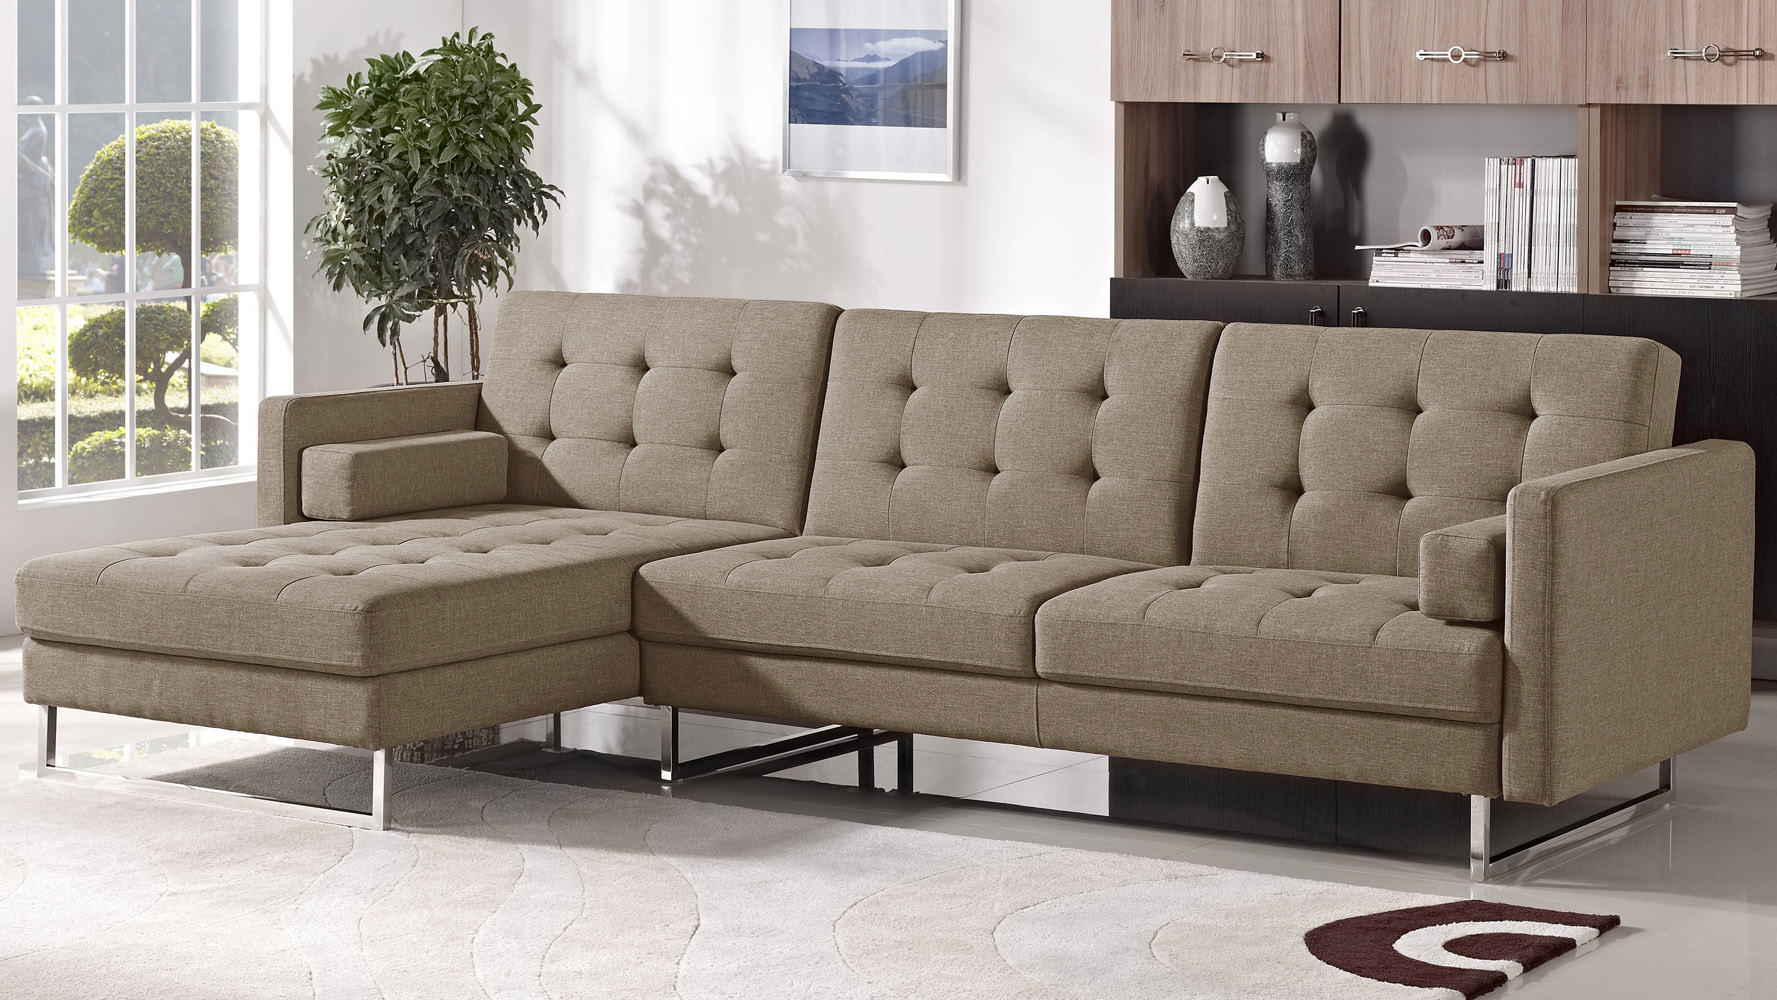 sleeper sofa decor sectional trampoline sectionals charcoal room ideas contemporary with s sale living city comfy furniture ikea for delta